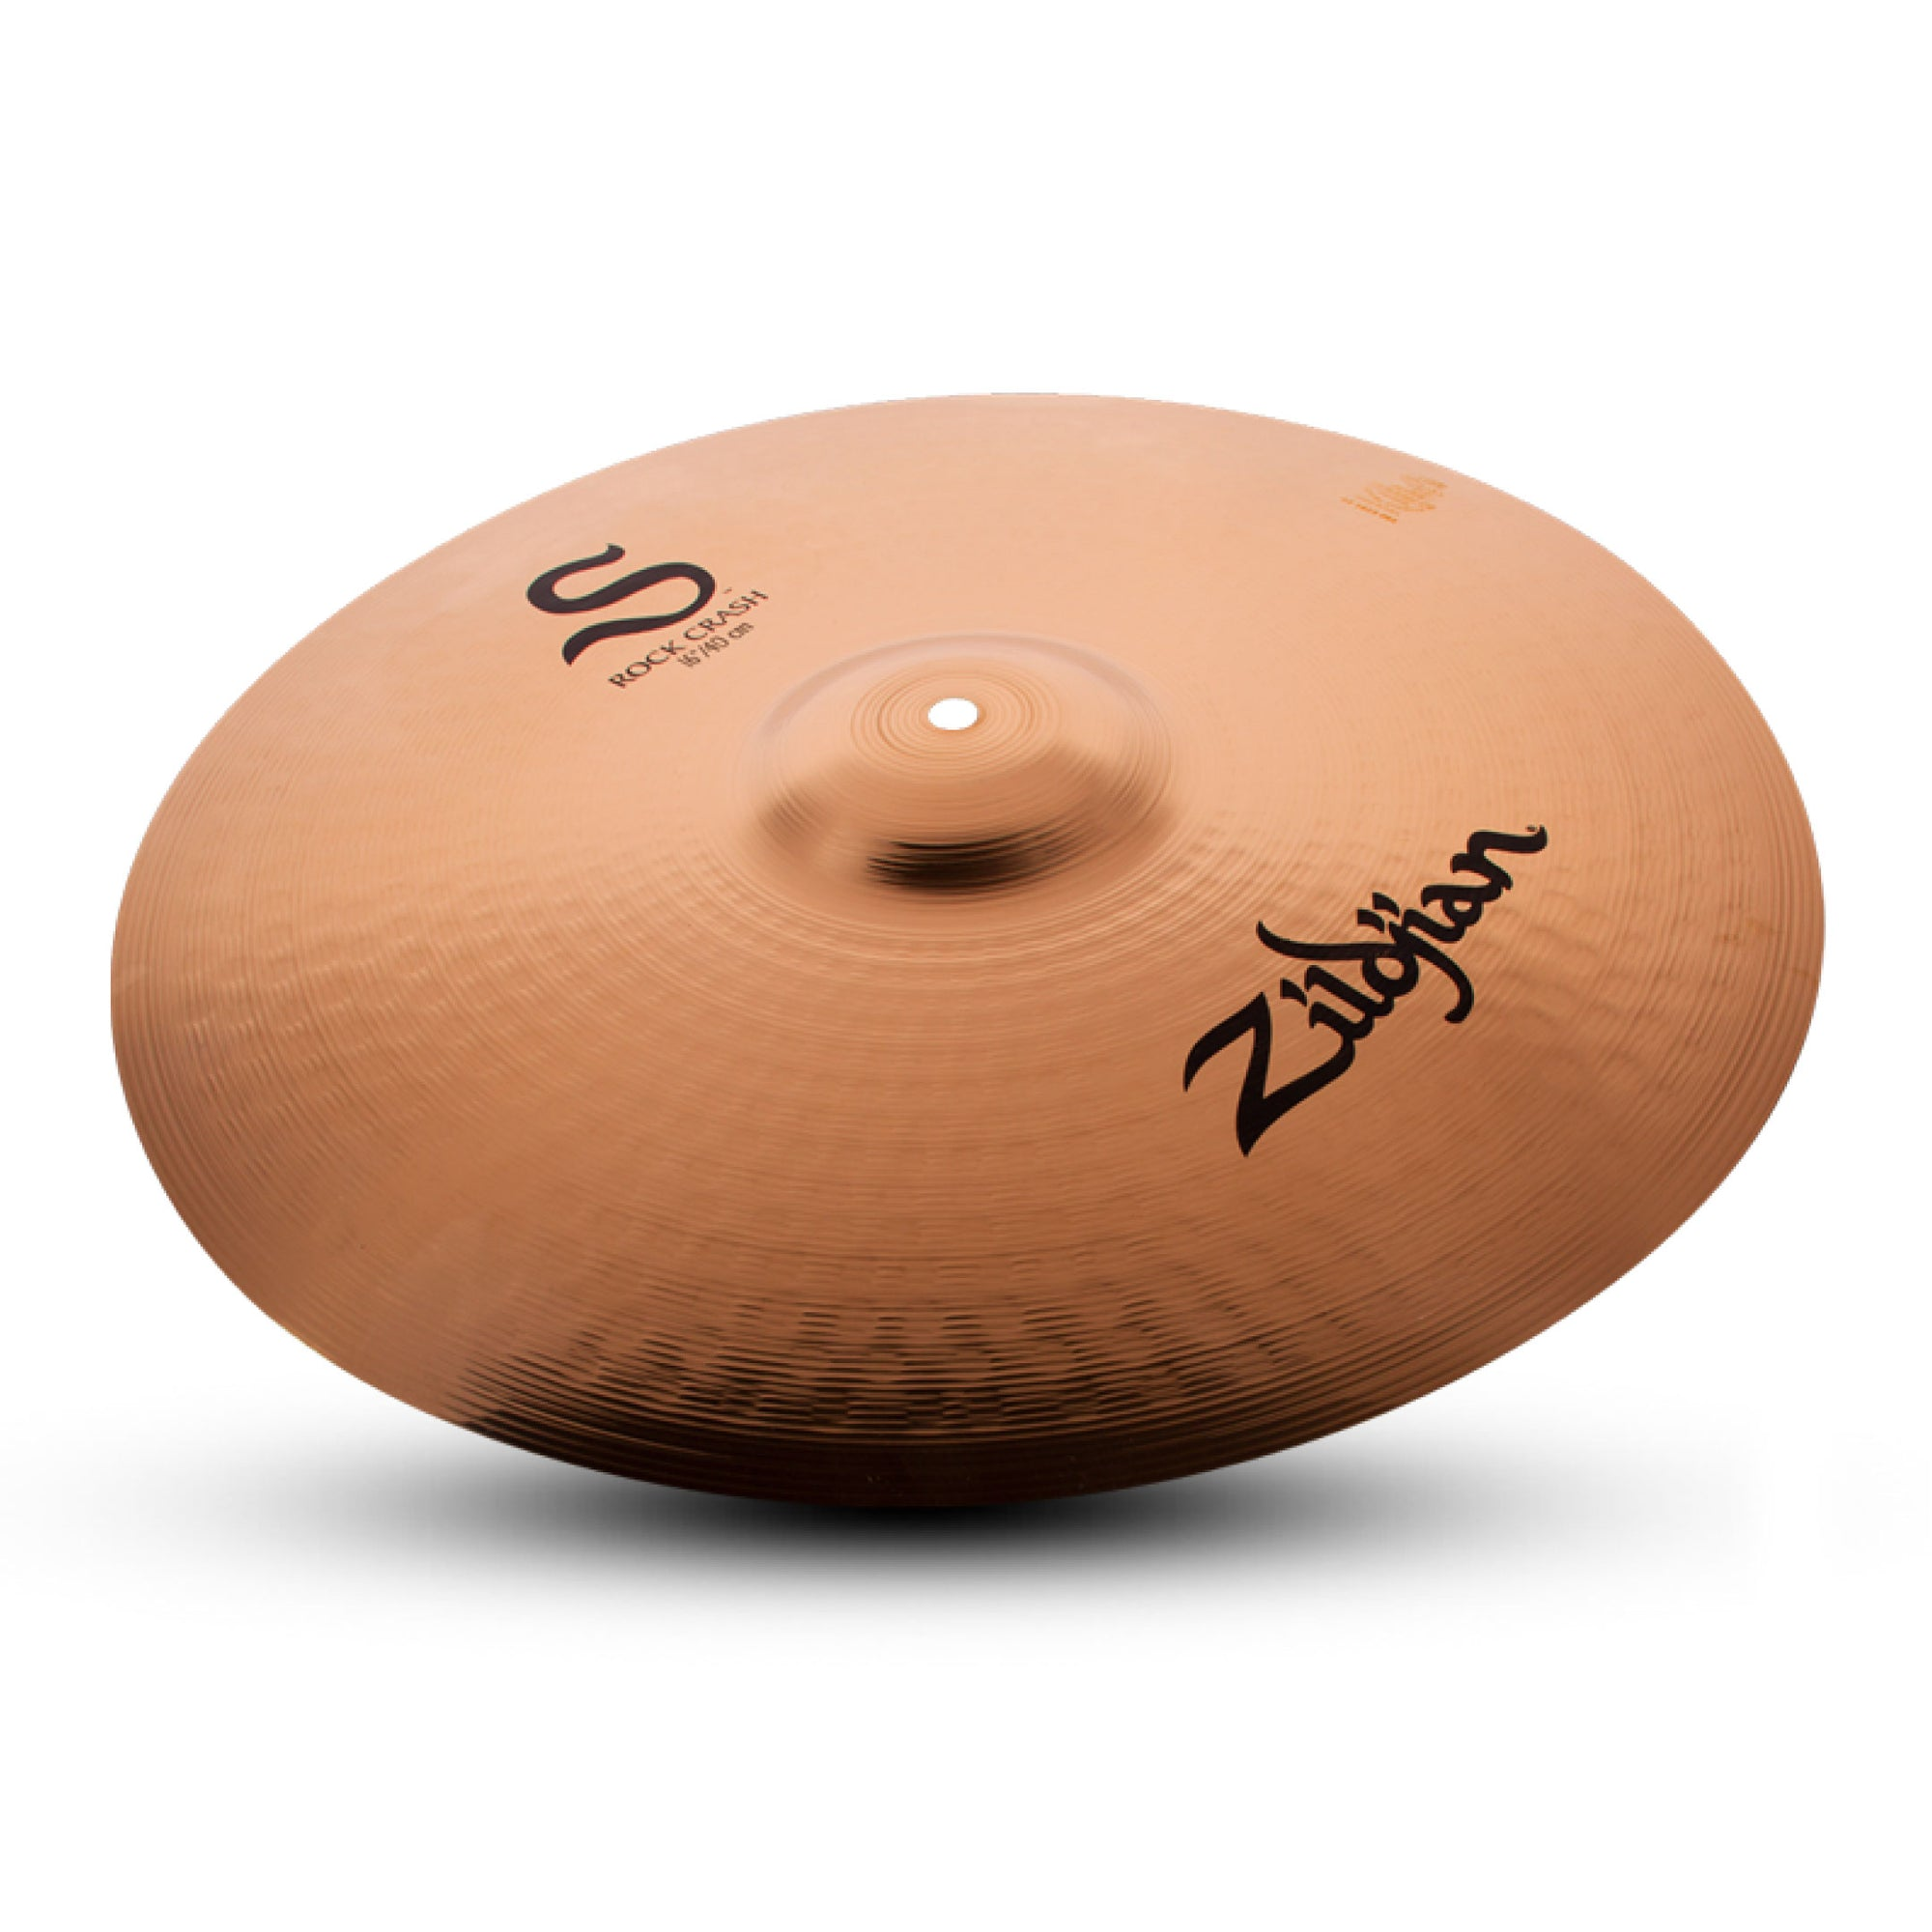 Zildjian Cymbal S Rock Crash - Tarpley Music Company, Inc.